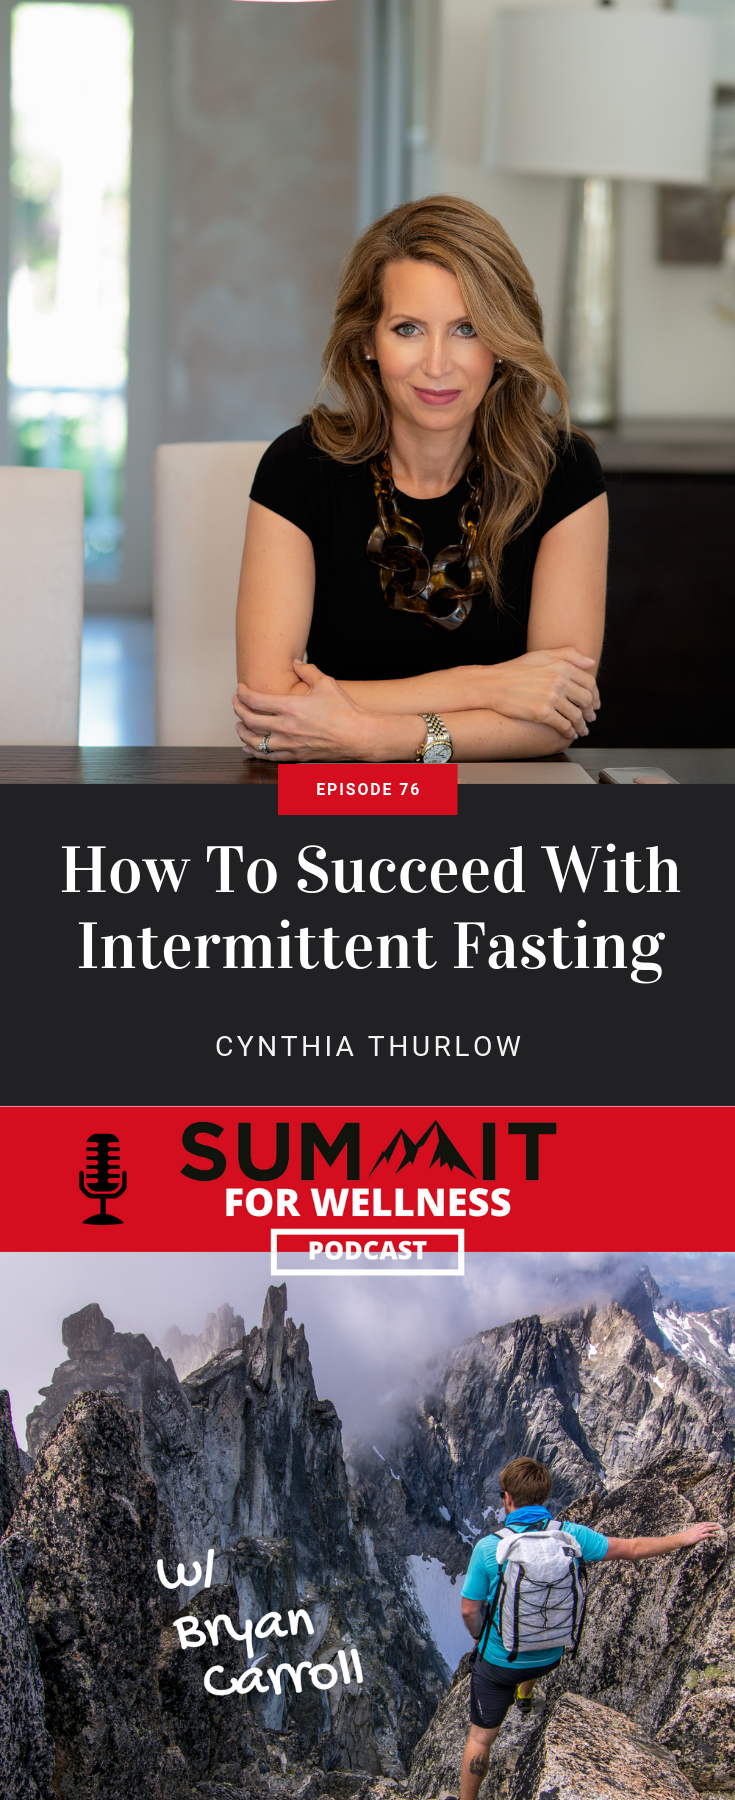 Cynthia Thurlow teaches how to do intermittent fasting, how it is beneficial, and what can cause you to fall out of fasting